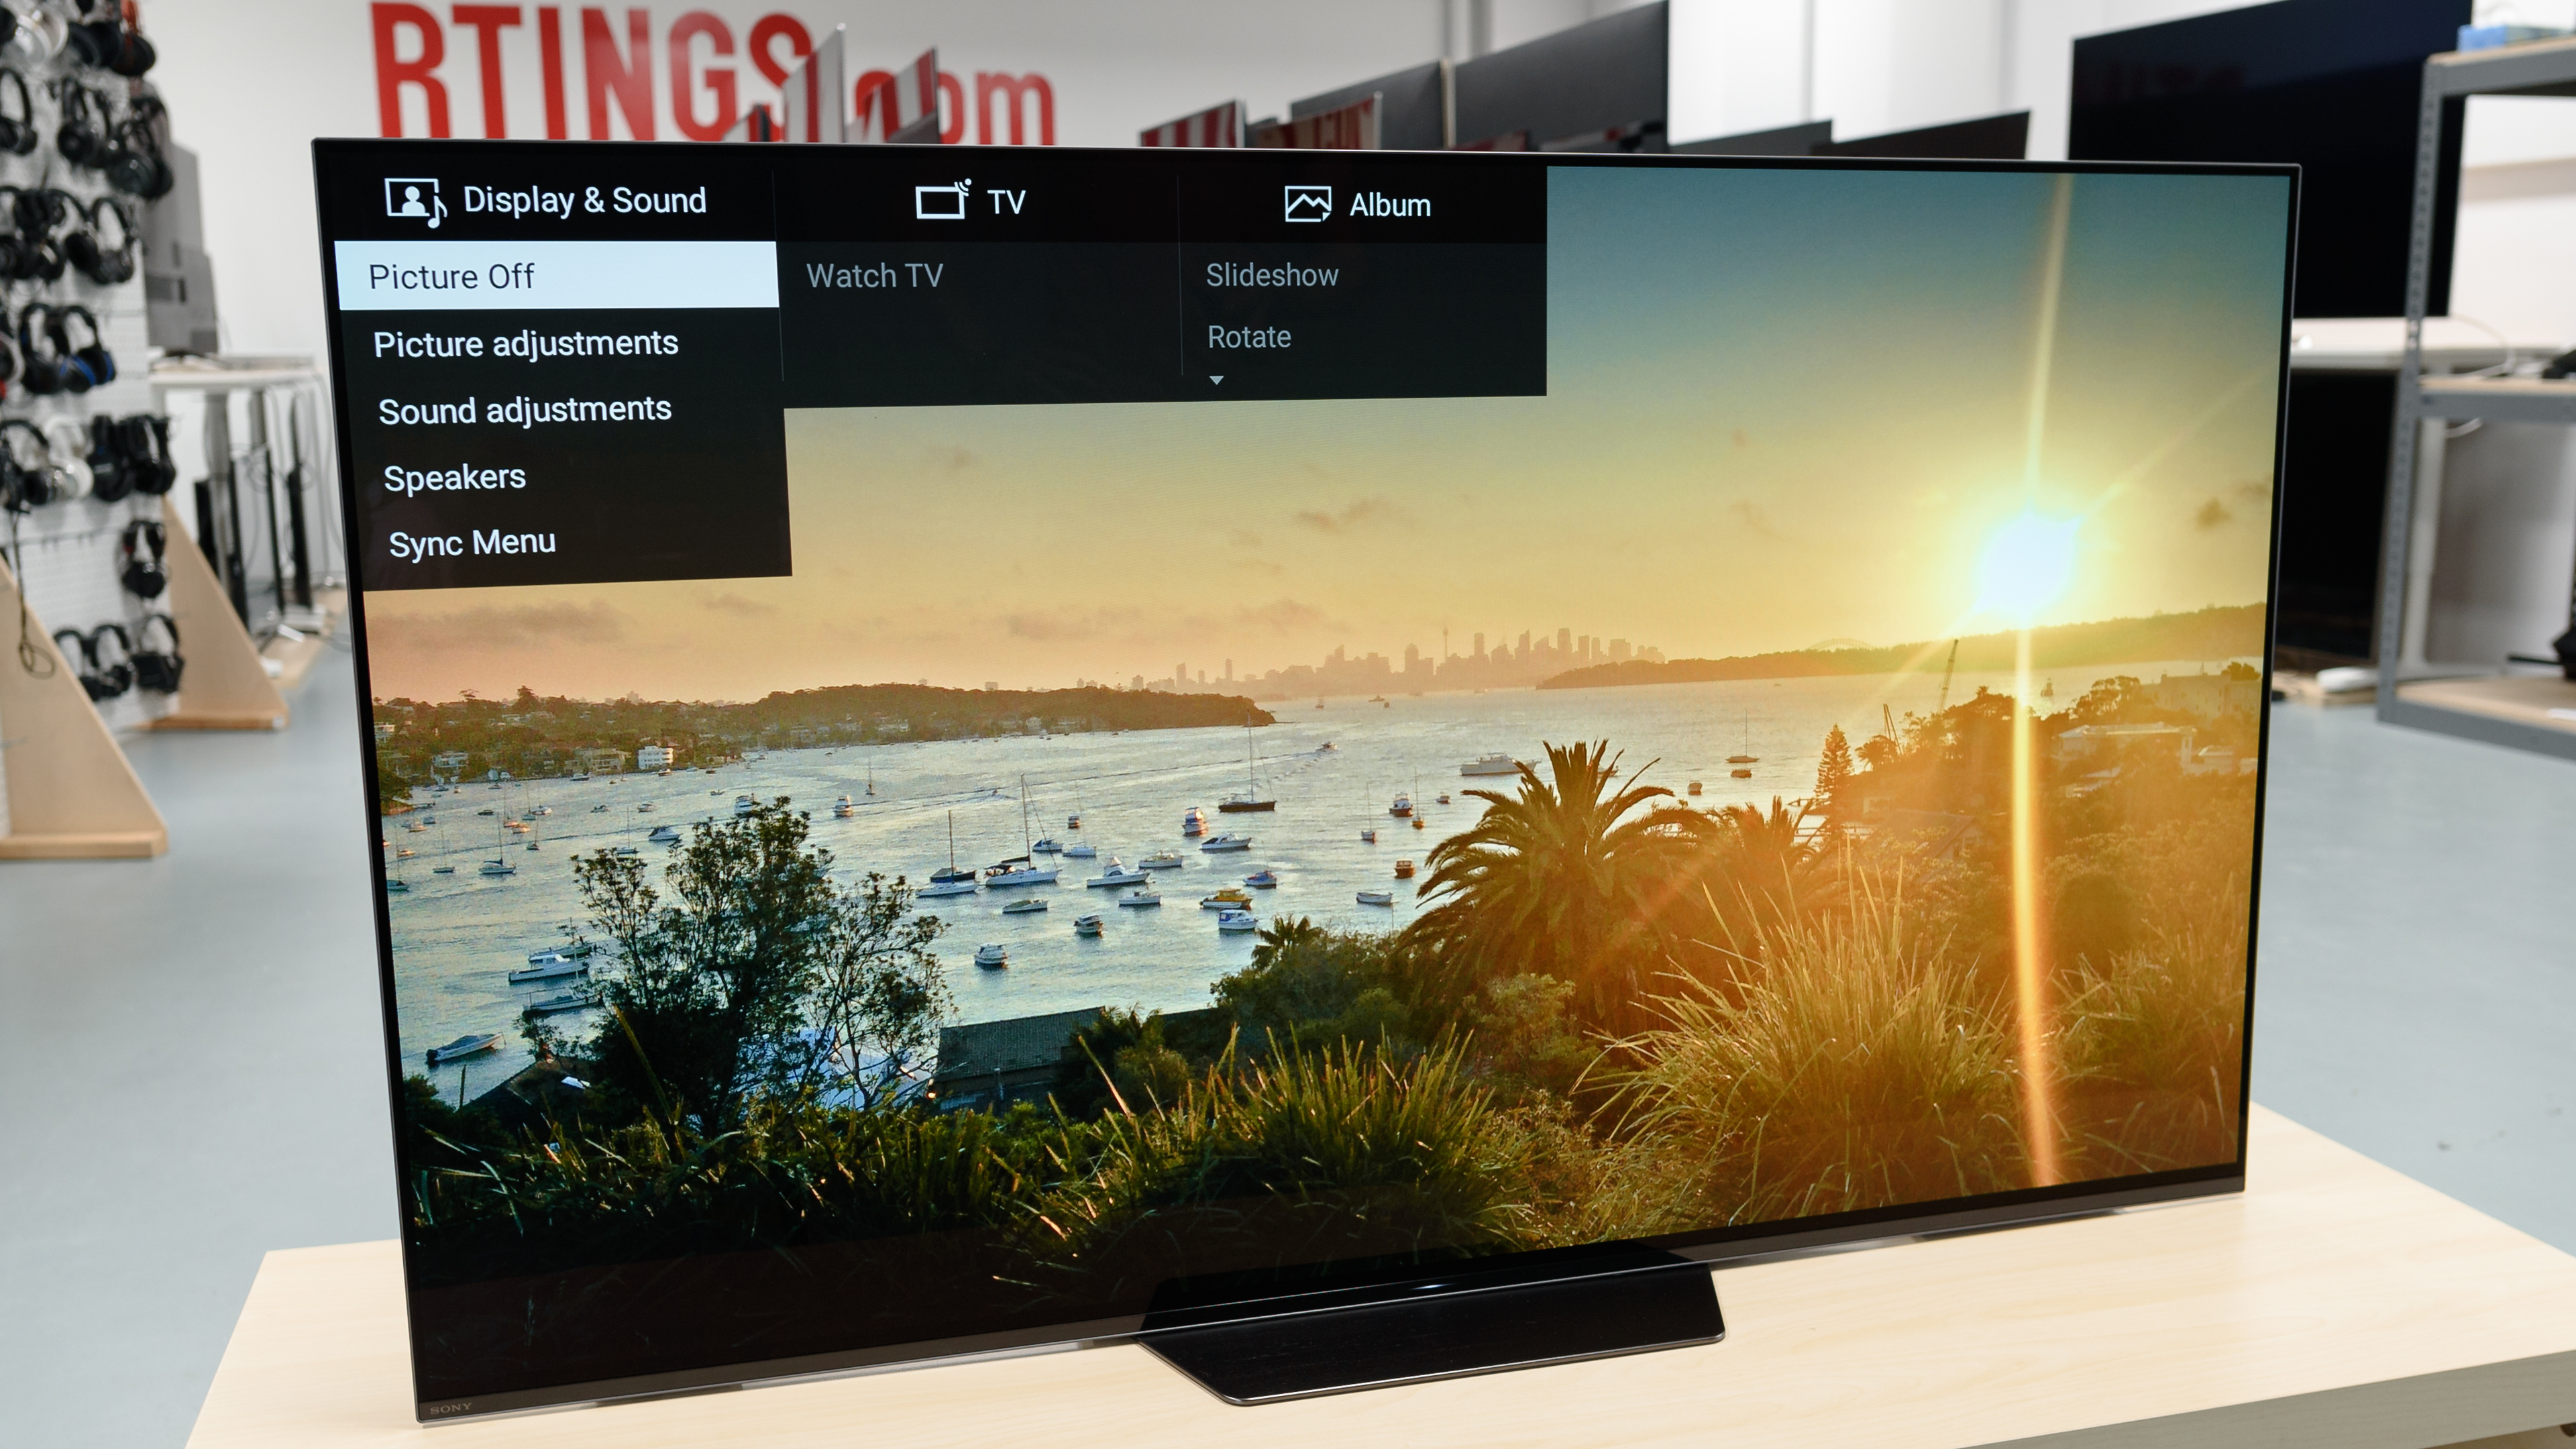 How To Get Rid Of Hdmi Banner On Sony Bravia